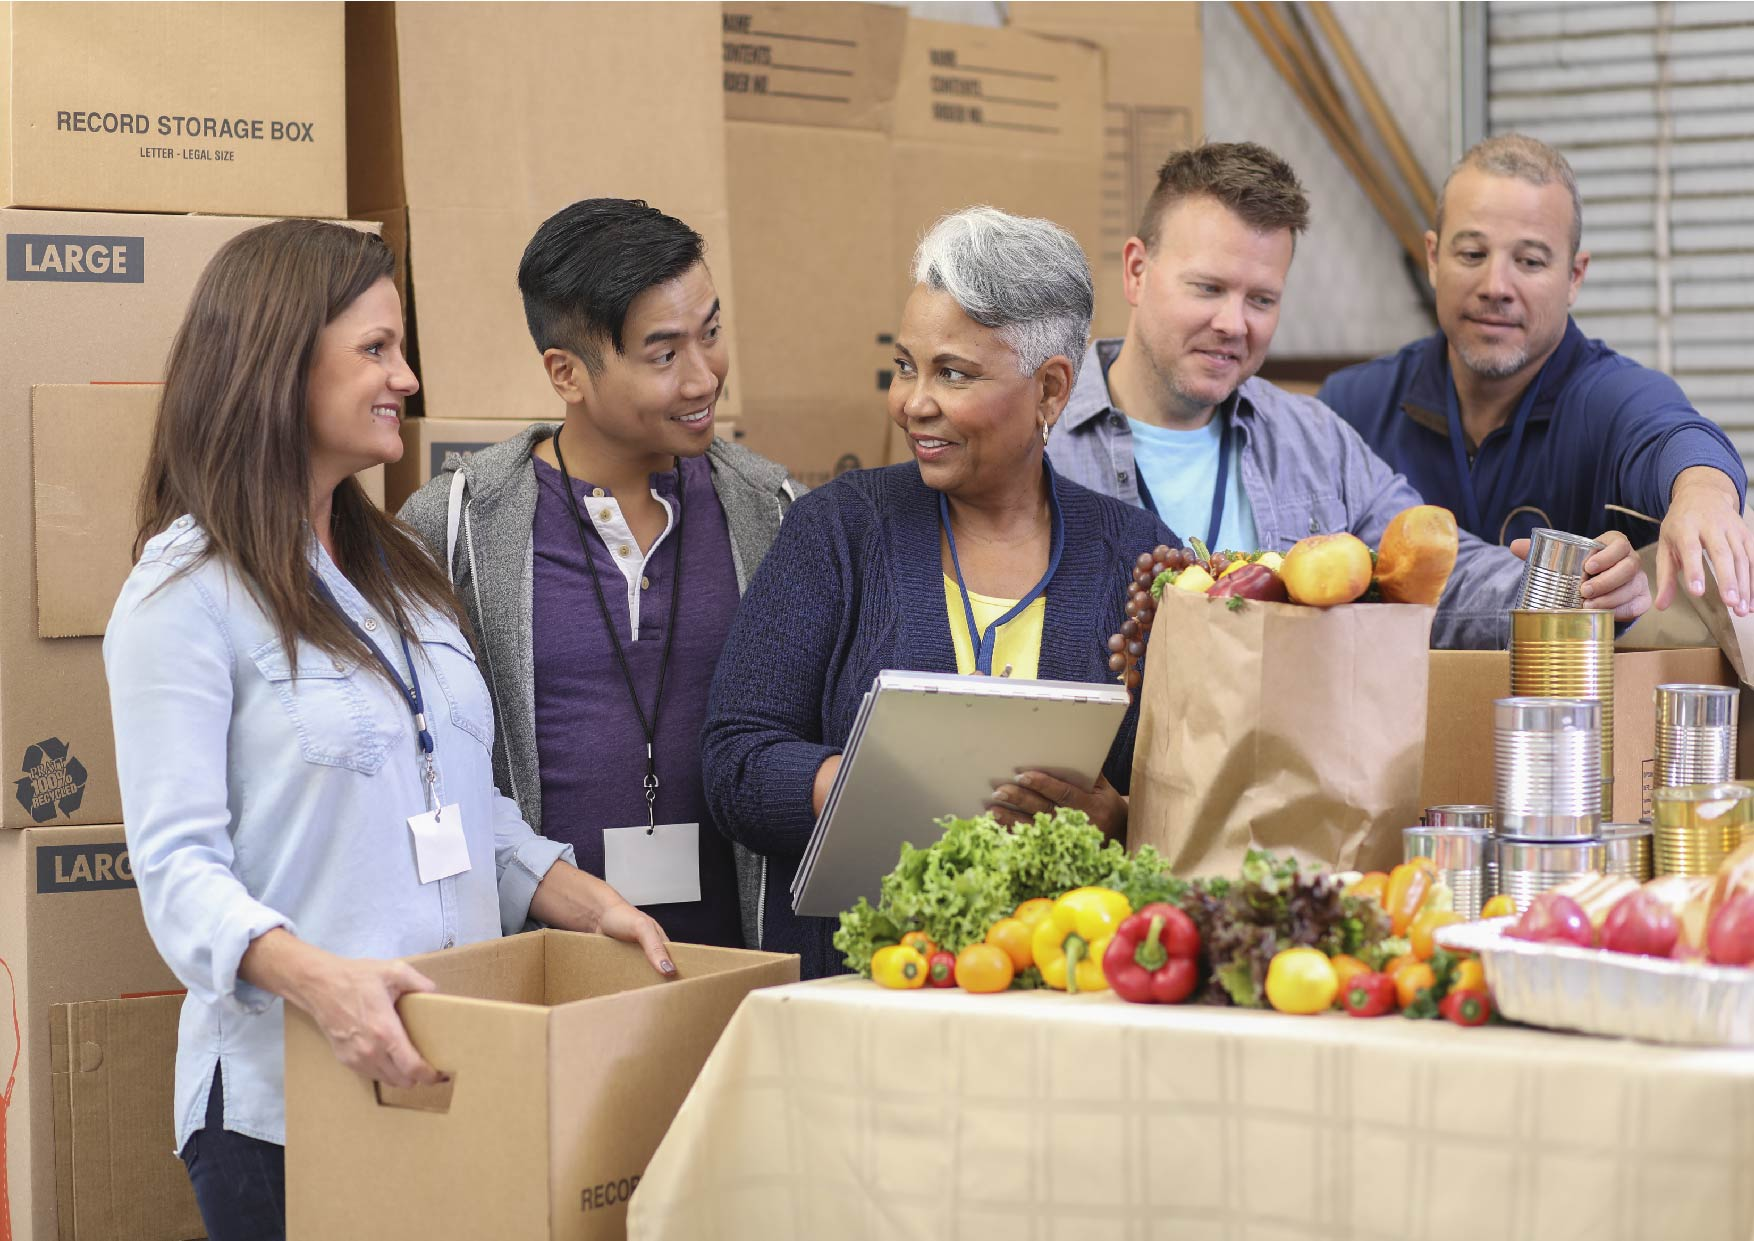 The Food Bank of Western Massachusetts joins the AnswerForce Giving Back program